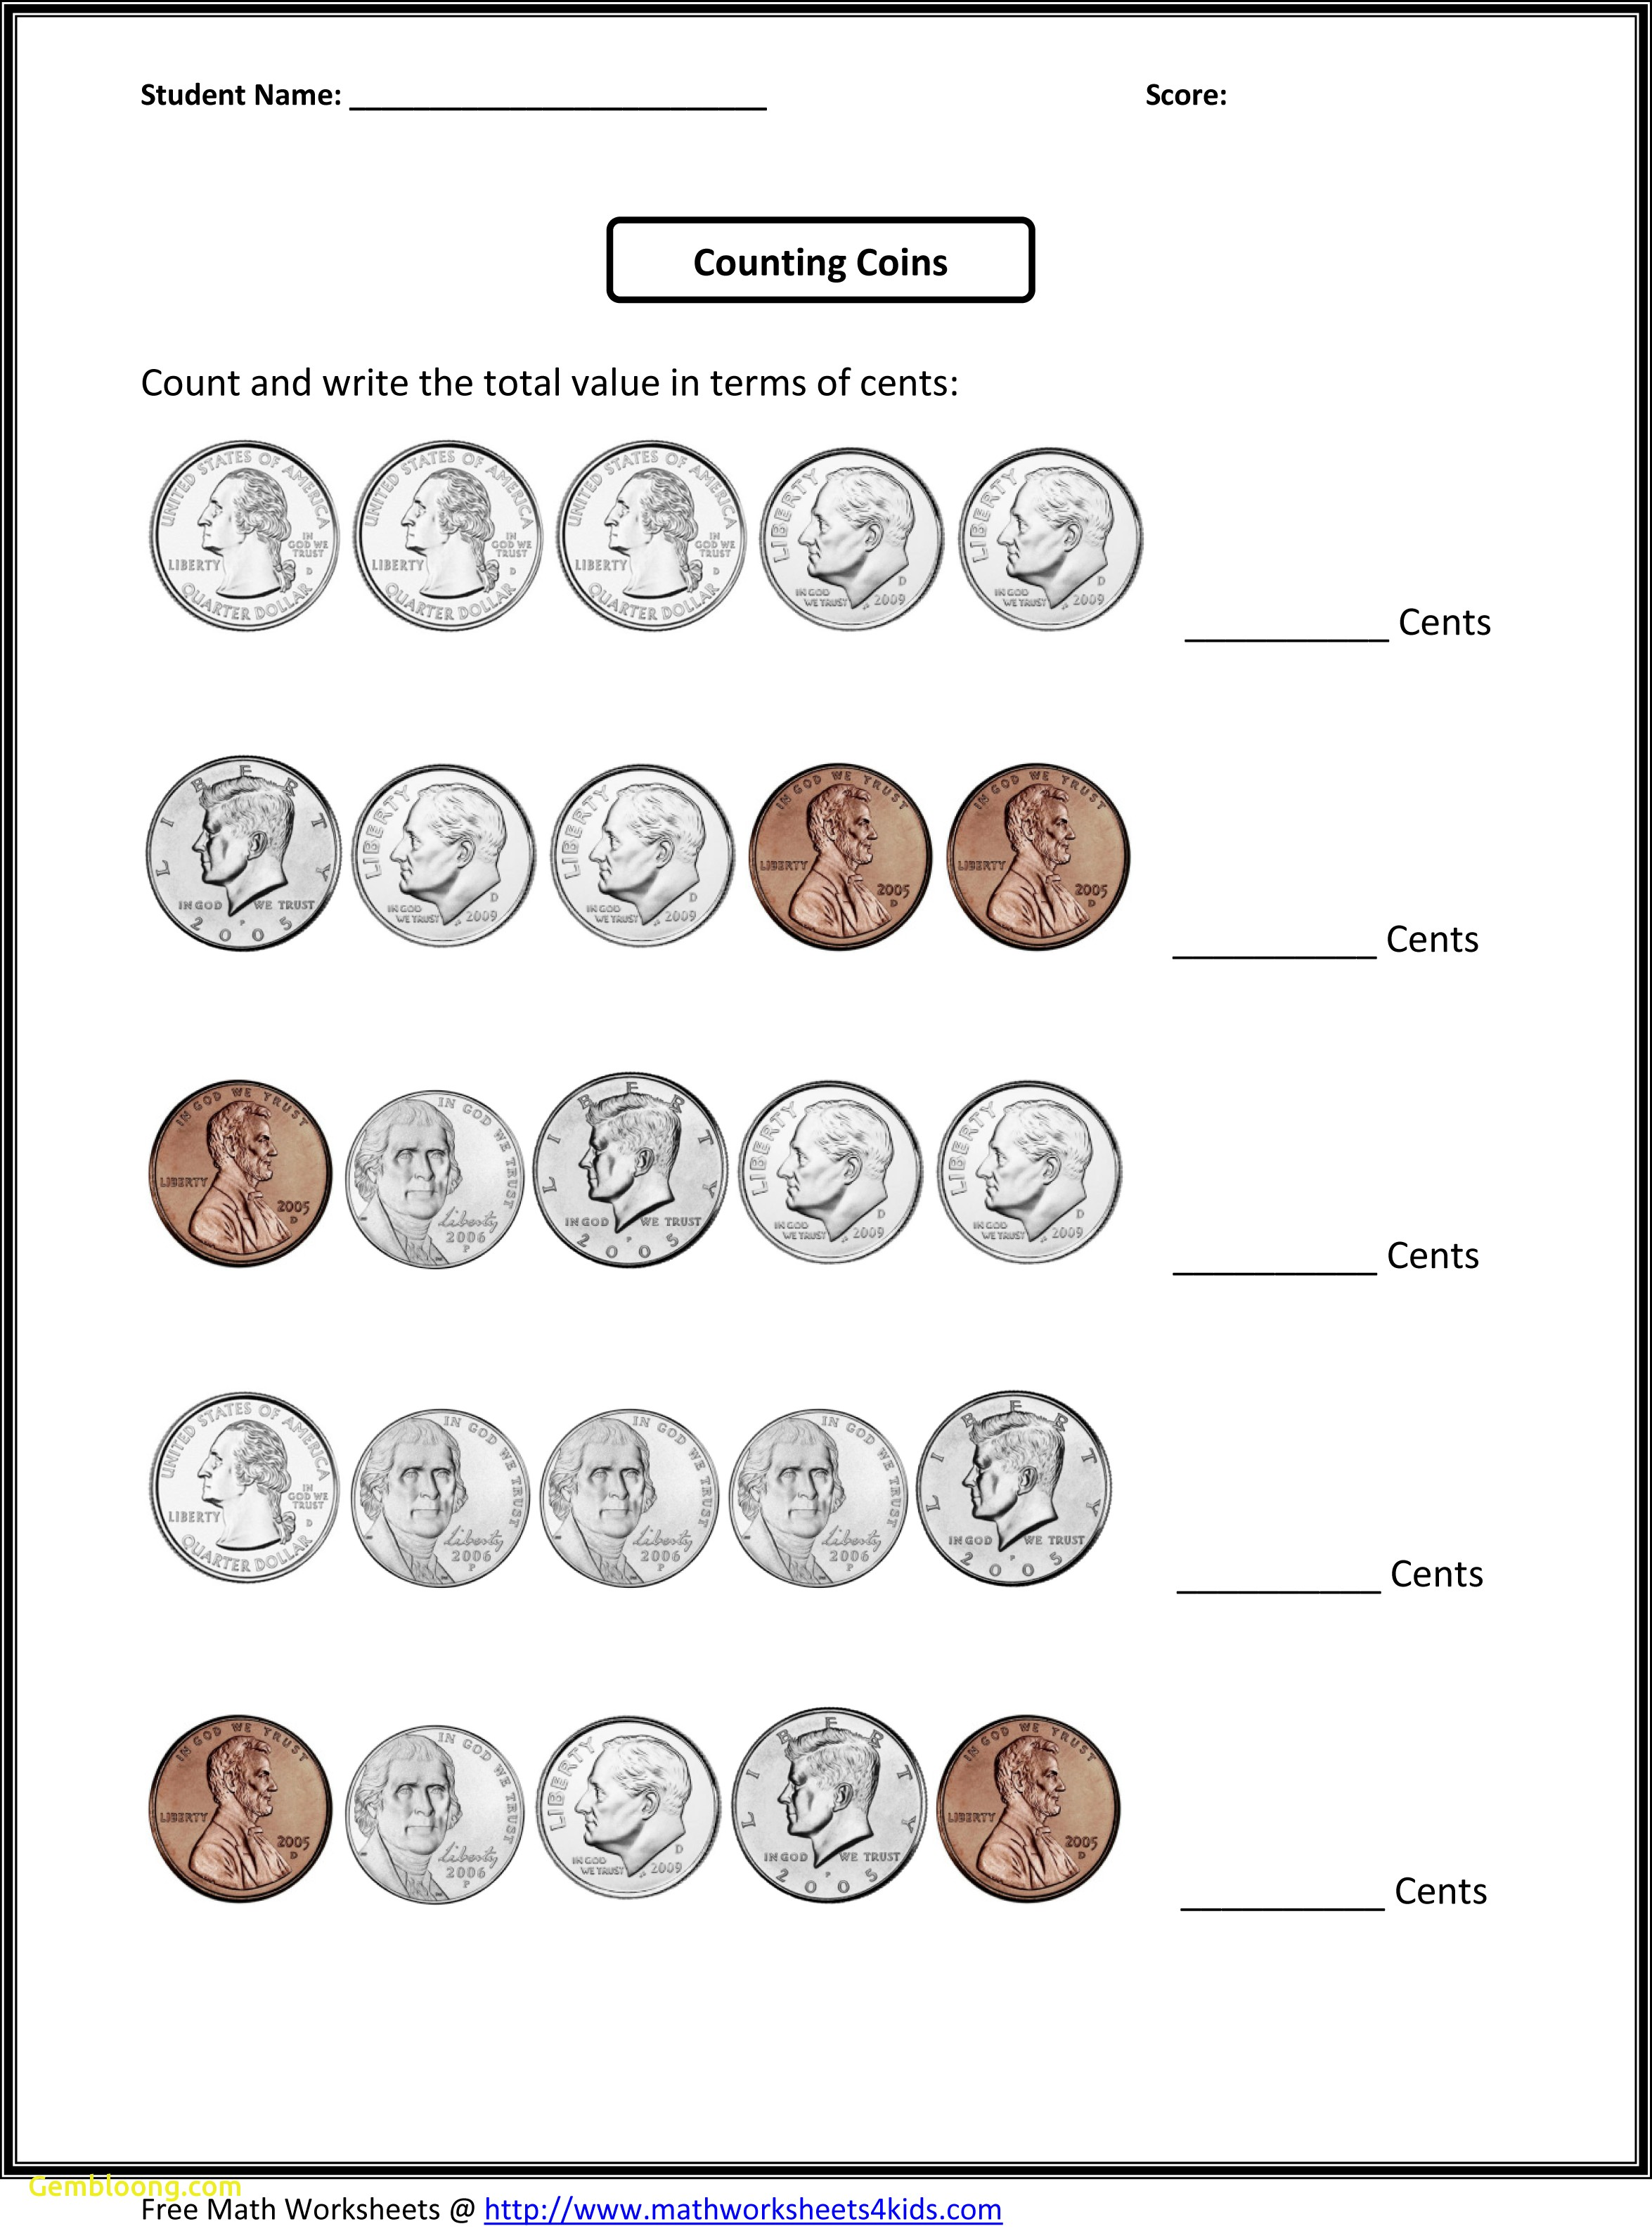 4th Grade Math Printable Worksheets Counting Coins